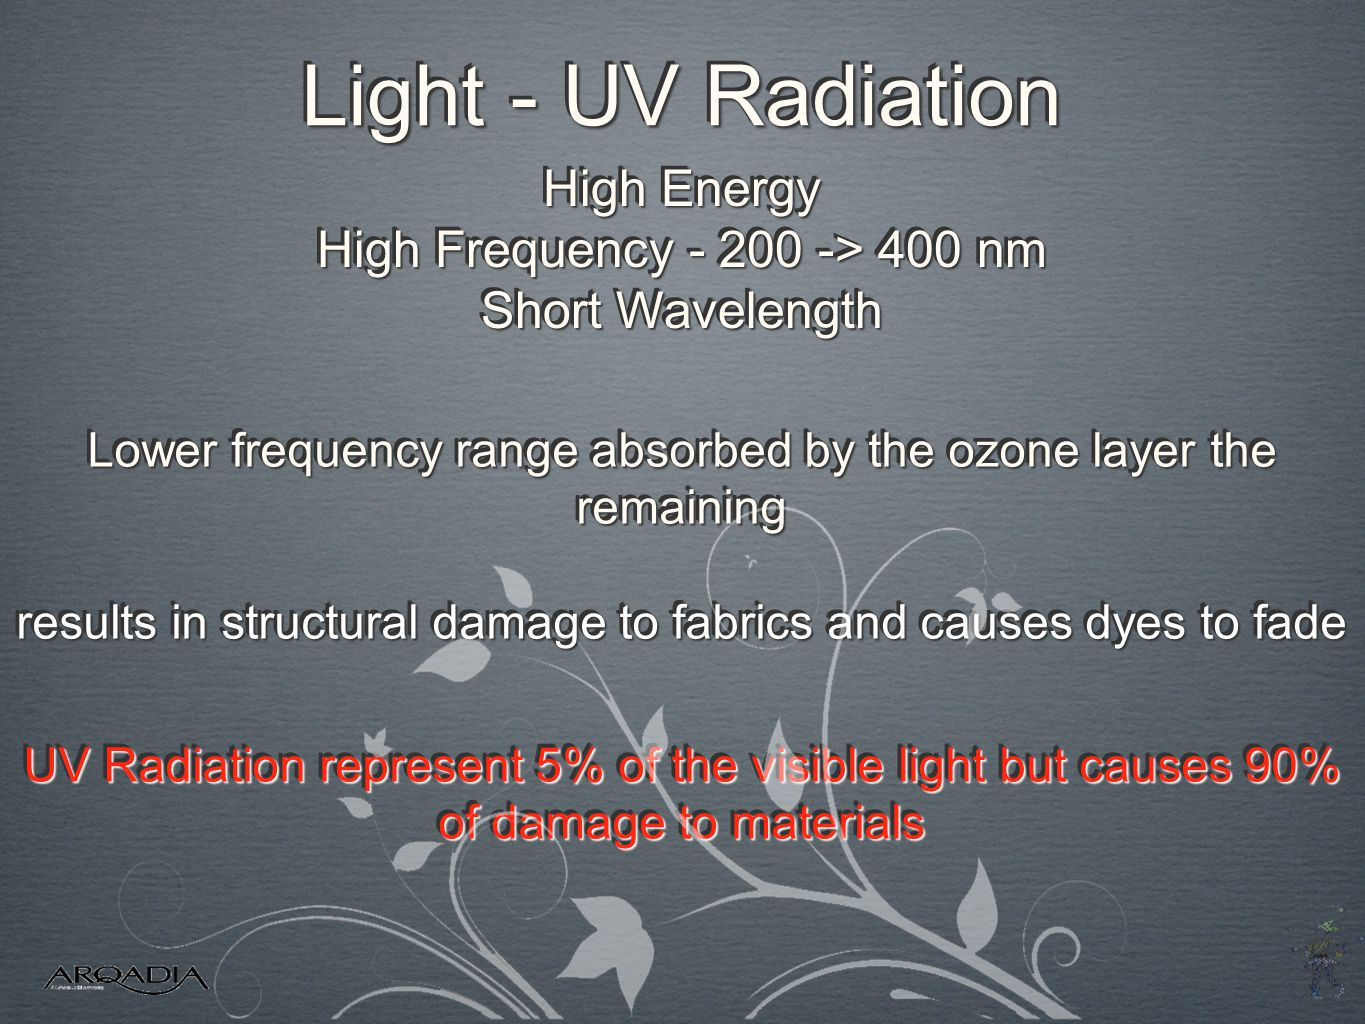 Light - UV Radiation High Energy High Frequency - 200 -> 400 nm